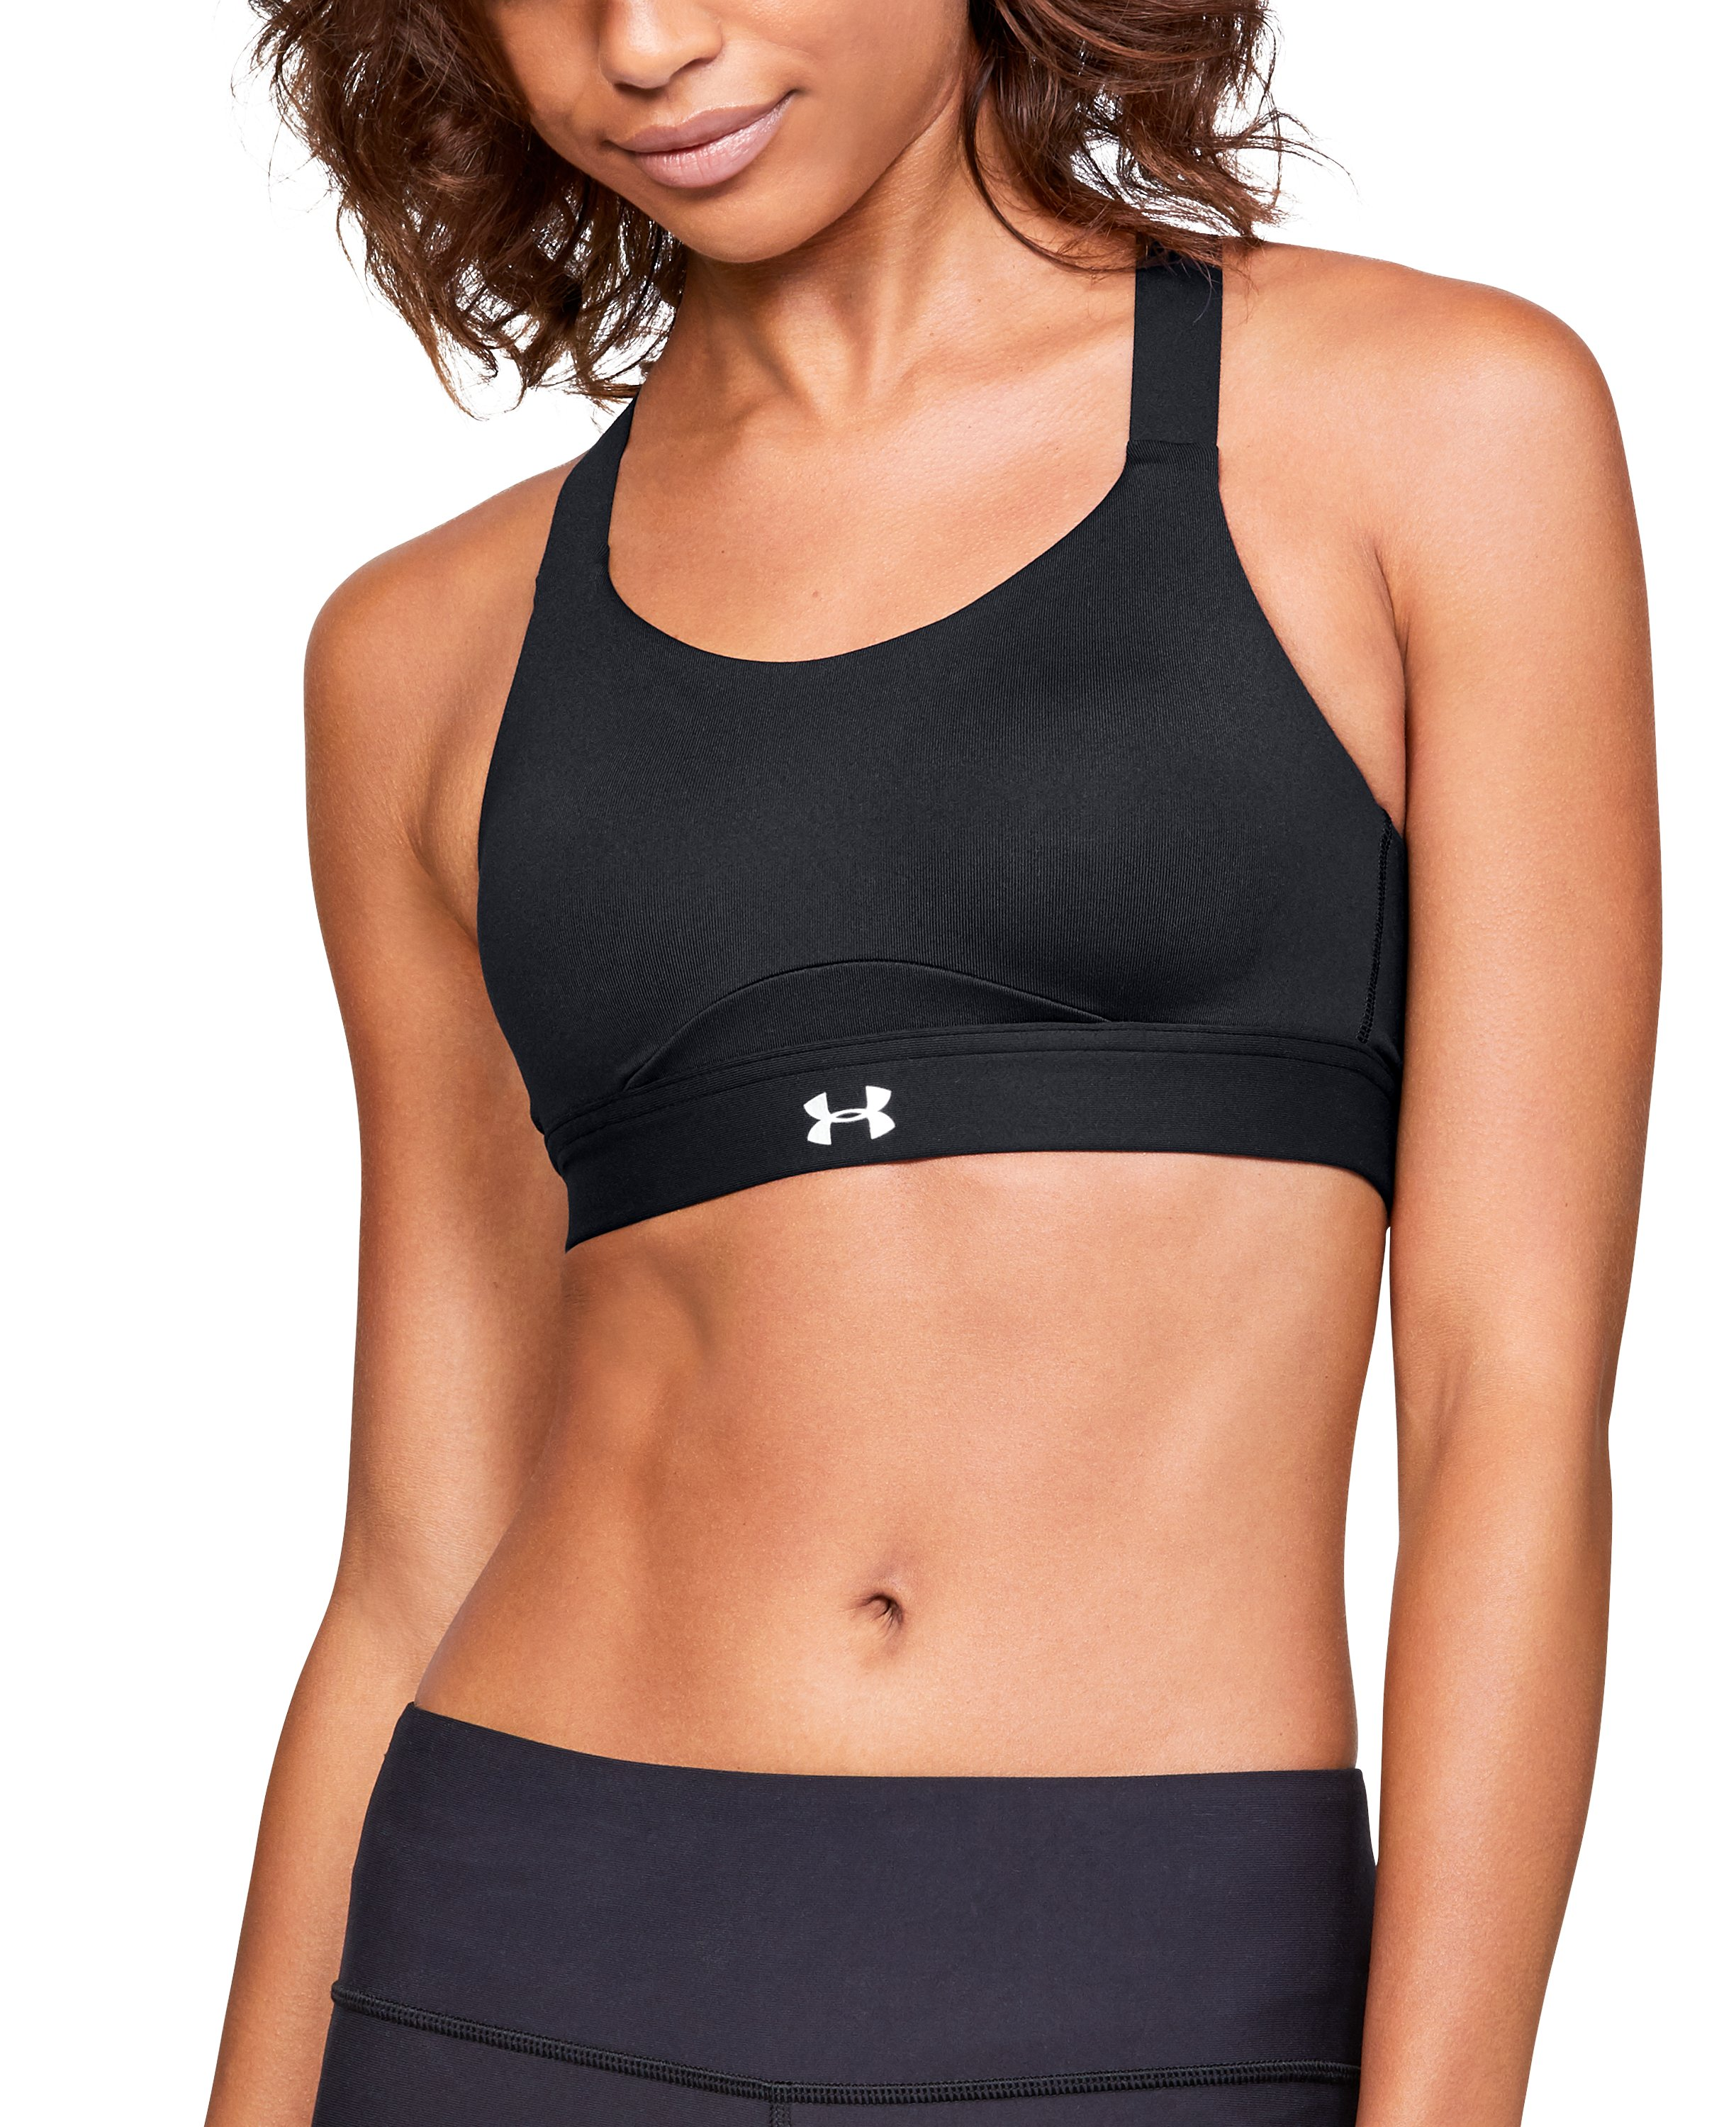 woman bras Women's Armour® Eclipse High Sports Bra I do love that it isn't a front closure bra which many companies are doing now.